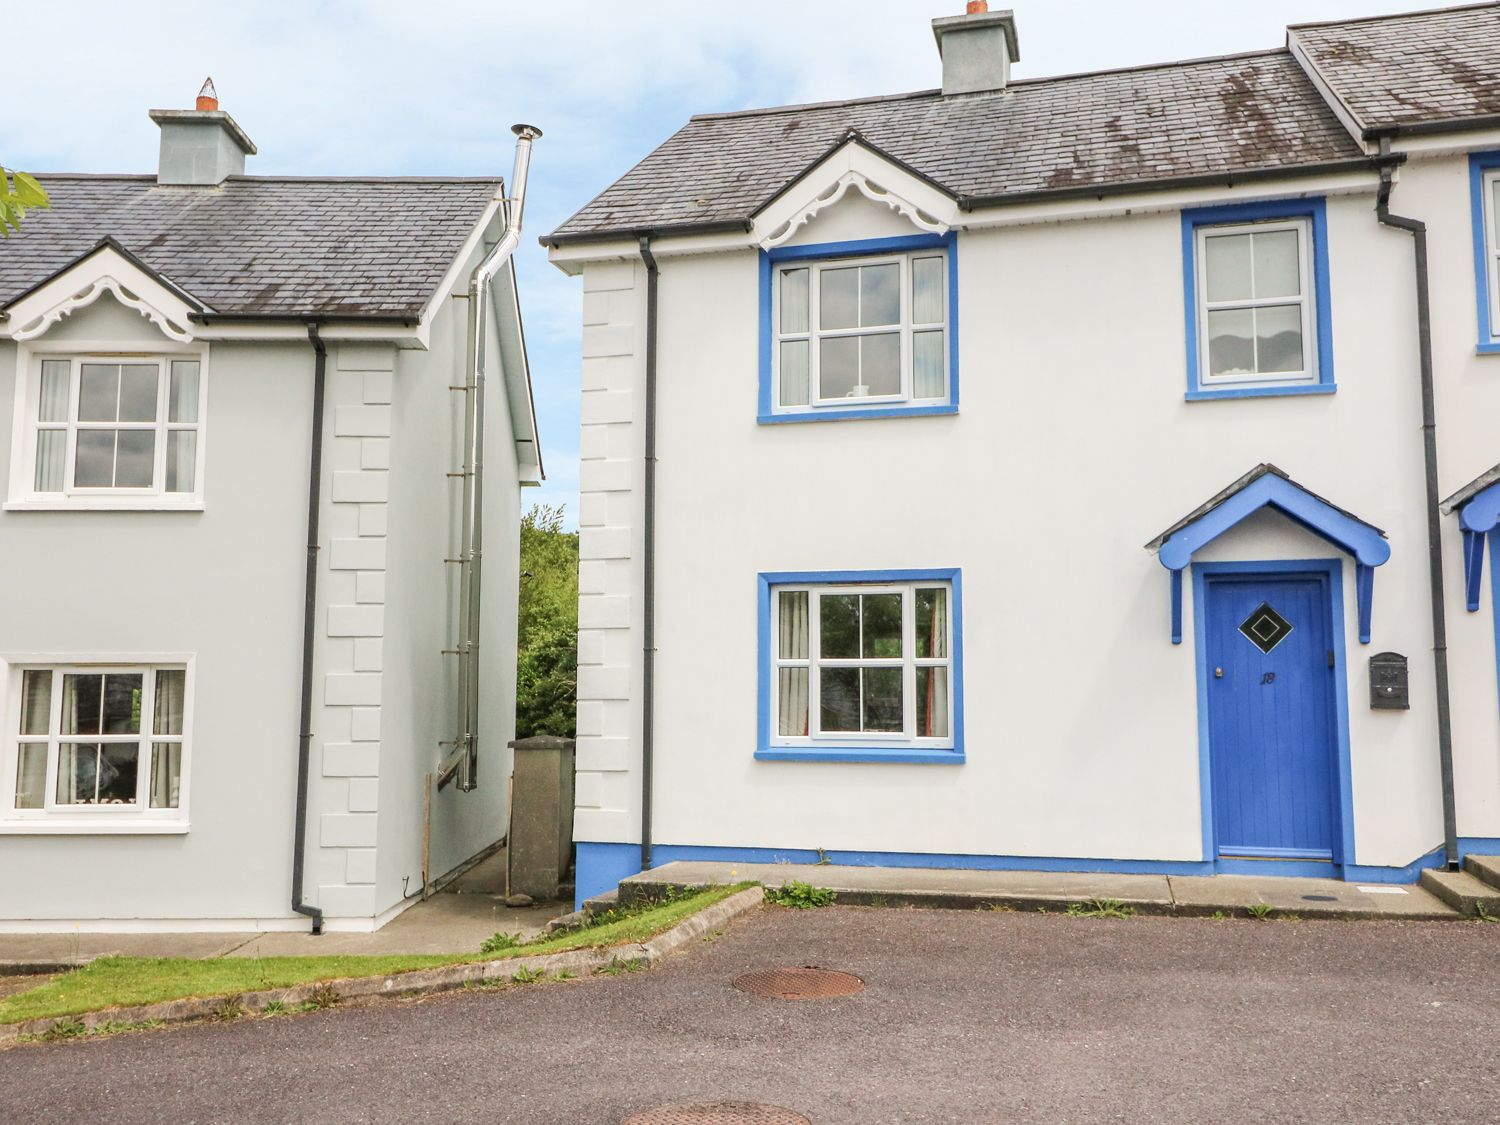 18 Dalewood - Kinsale & County Cork - 988282 - photo 1